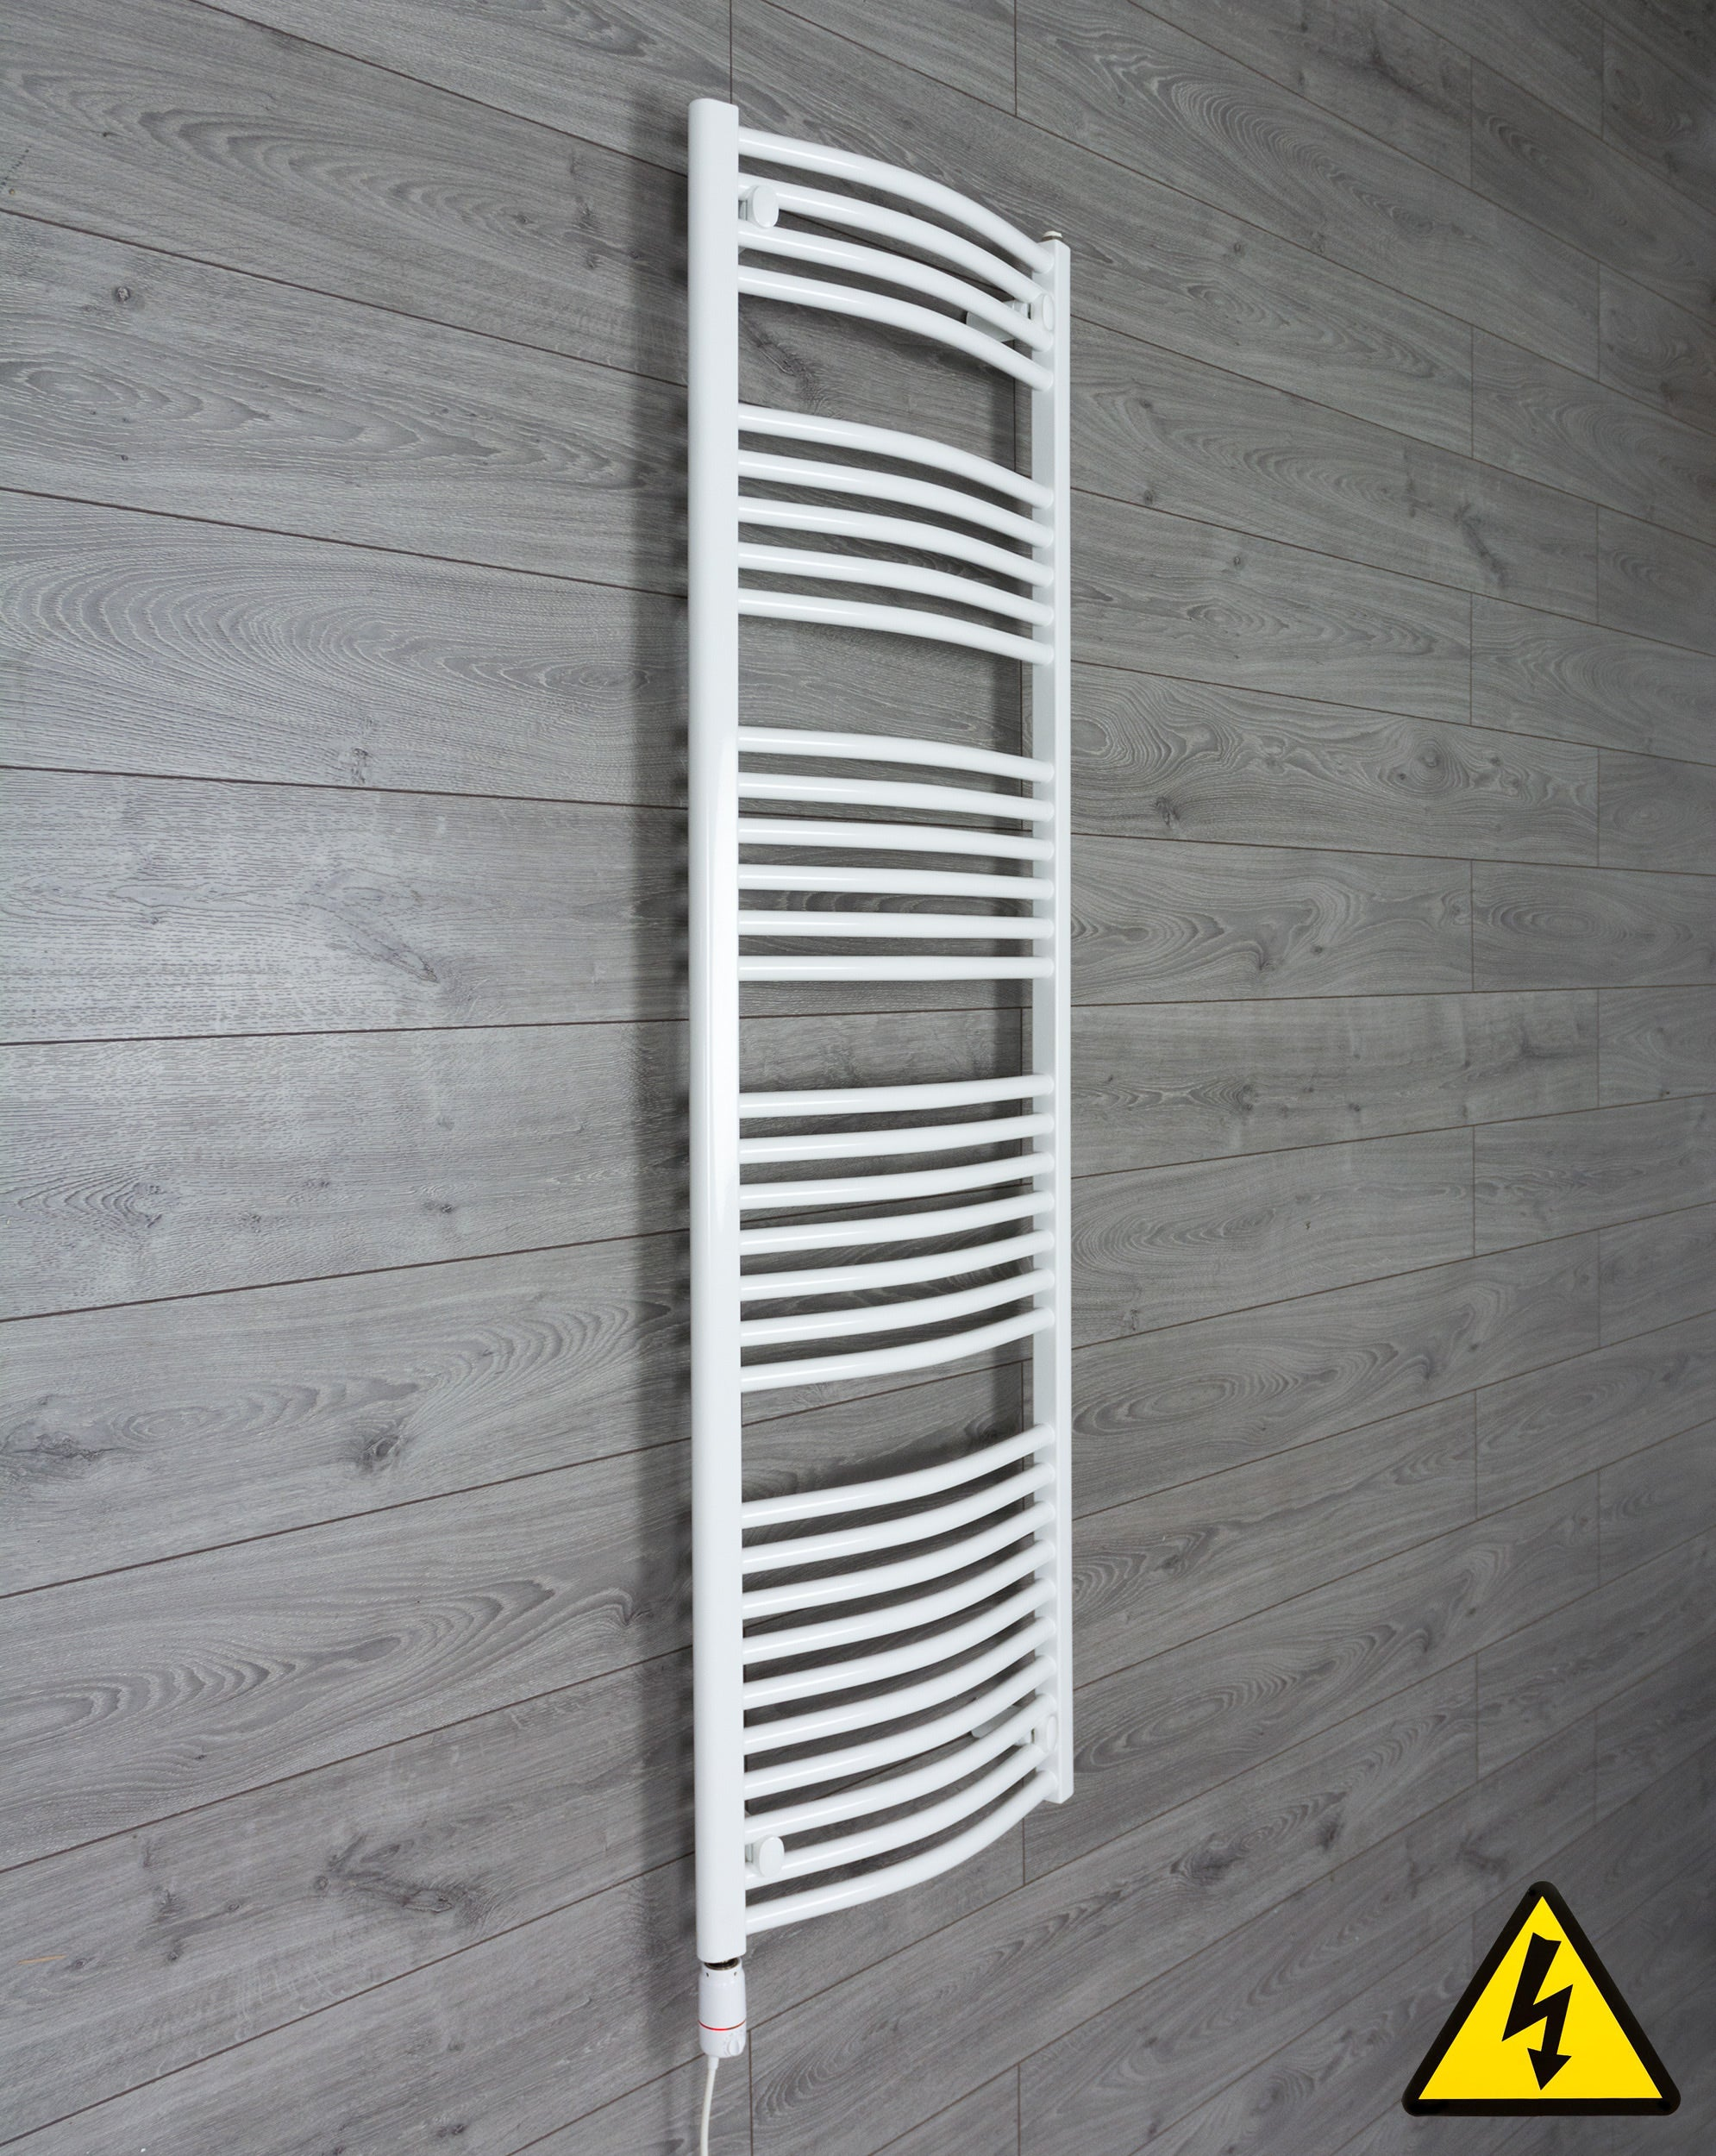 1600 mm High 500 mm Wide Heated Curved Towel Rail Radiator White Central heating or Electric thermostatic